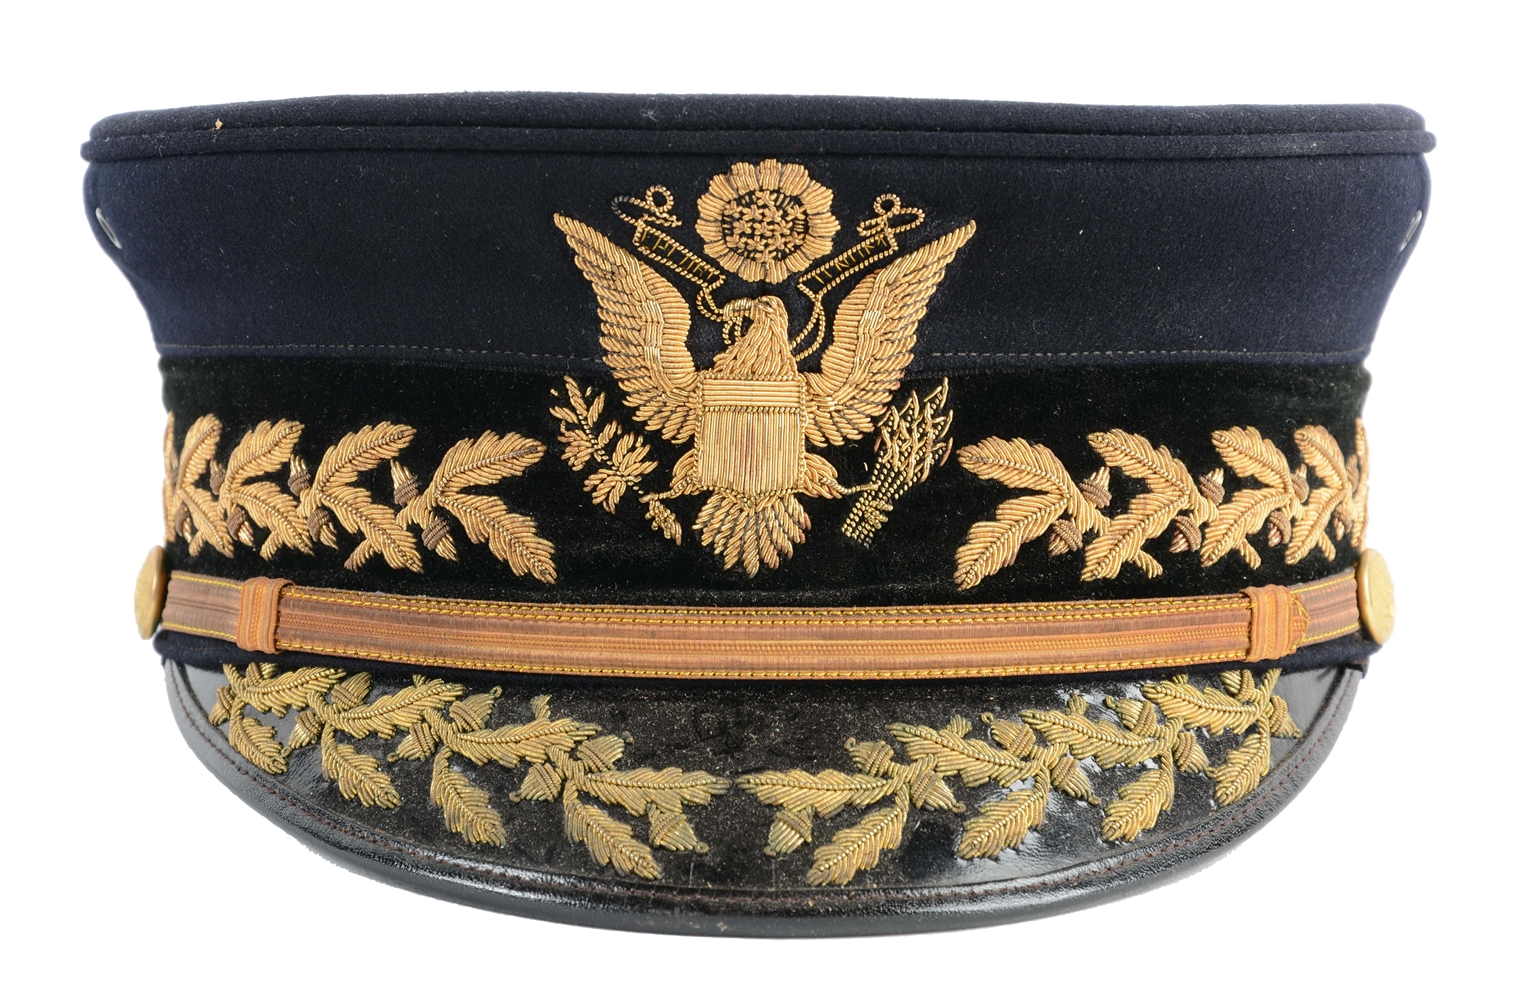 Boxed U.S. Army Model 1902 Generals Full Dress Visor Cap.